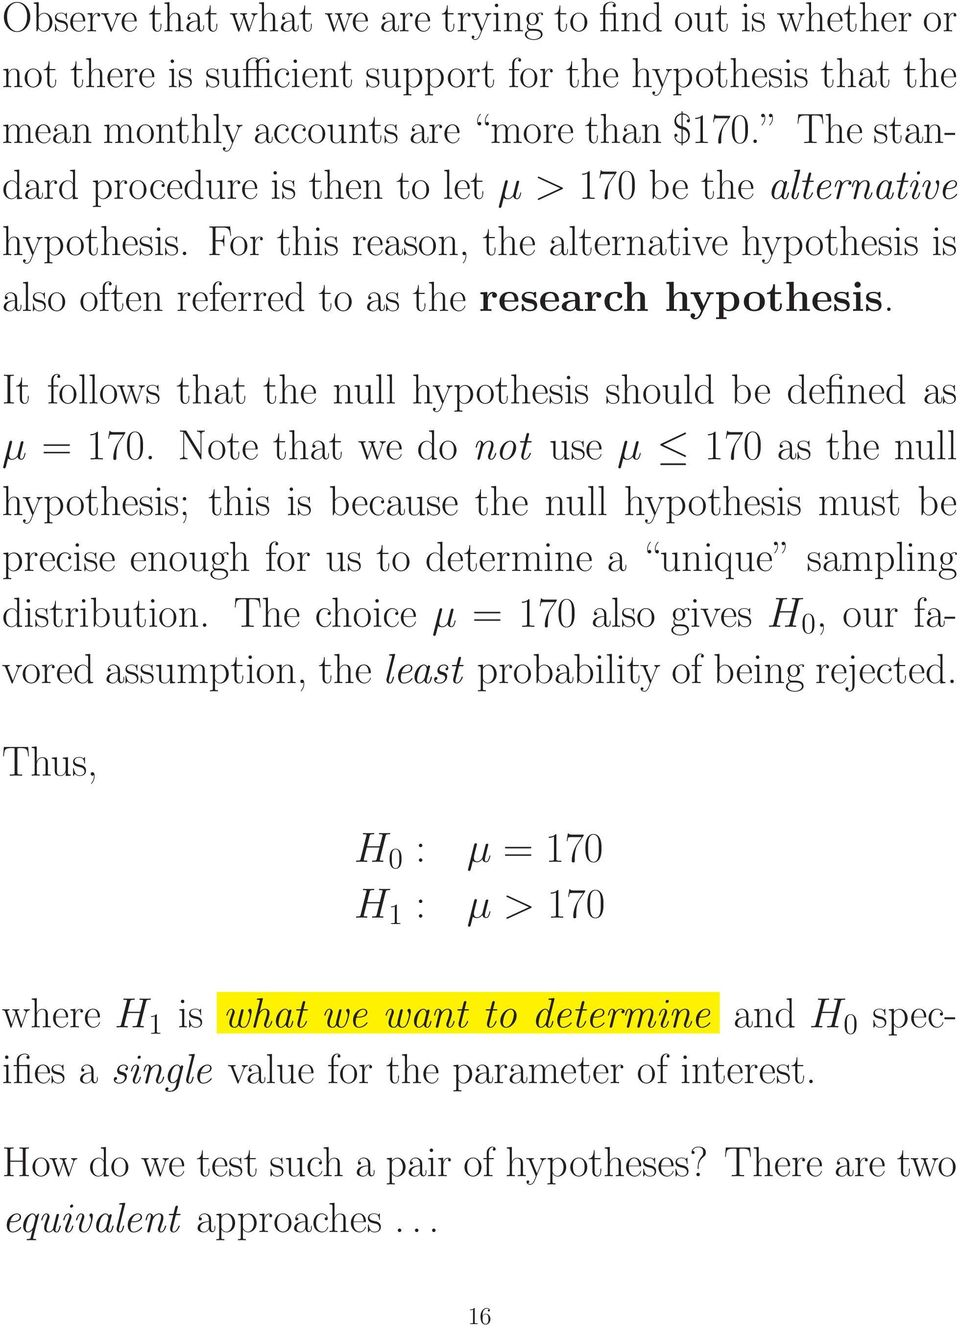 It follows that the null hypothesis should be defined as µ = 170.